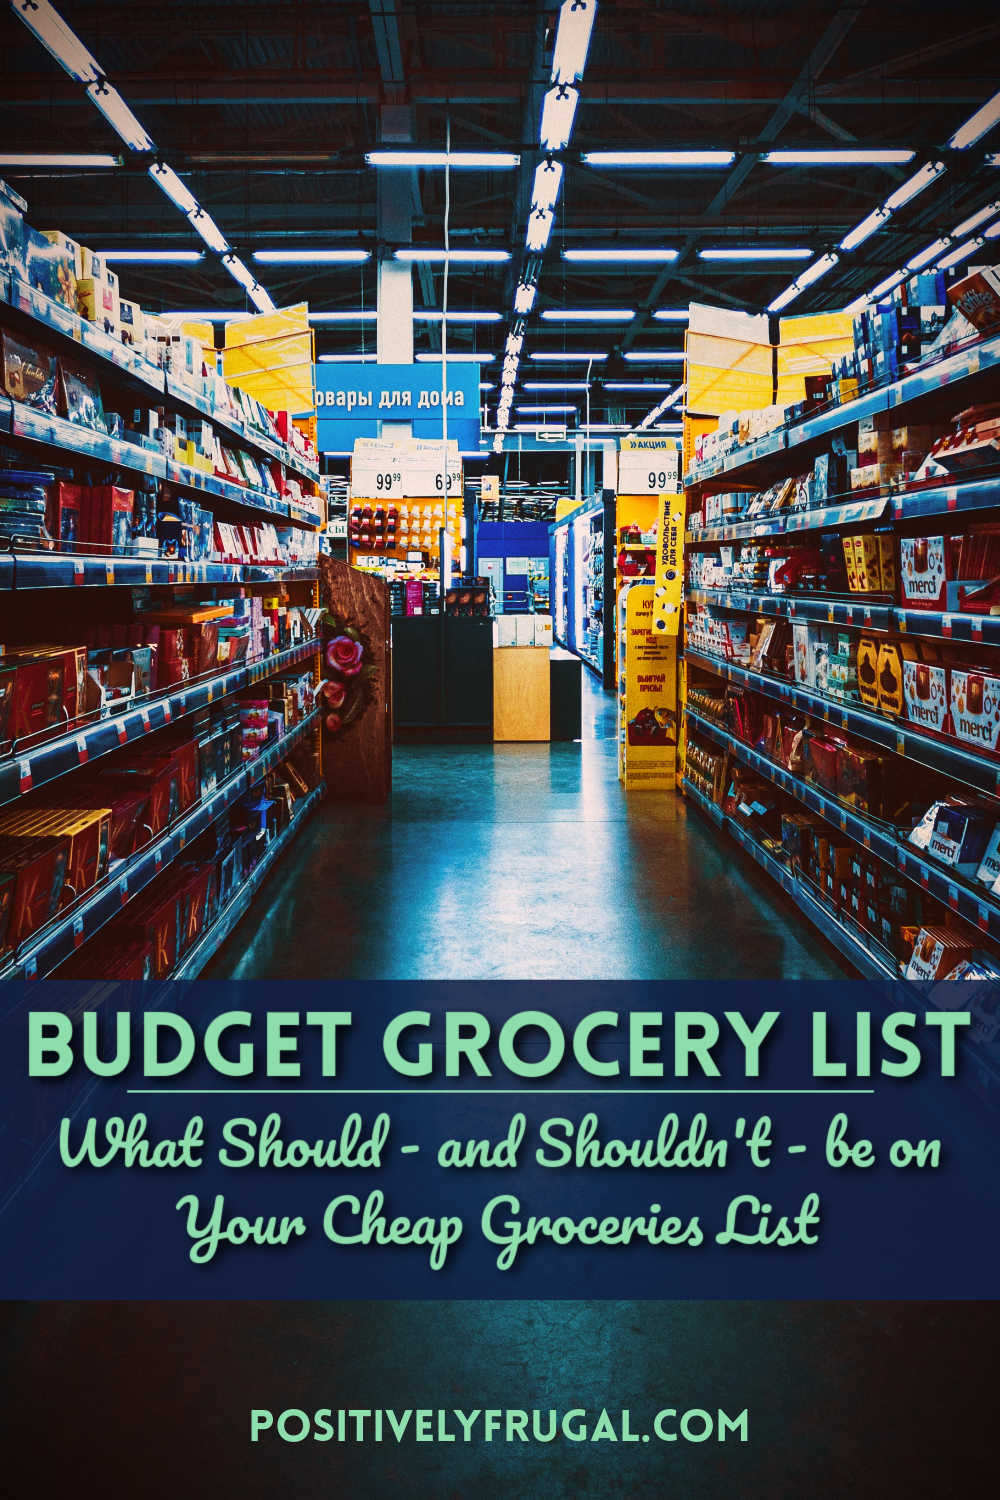 Grocery List Budget by PositivelyFrugal.com